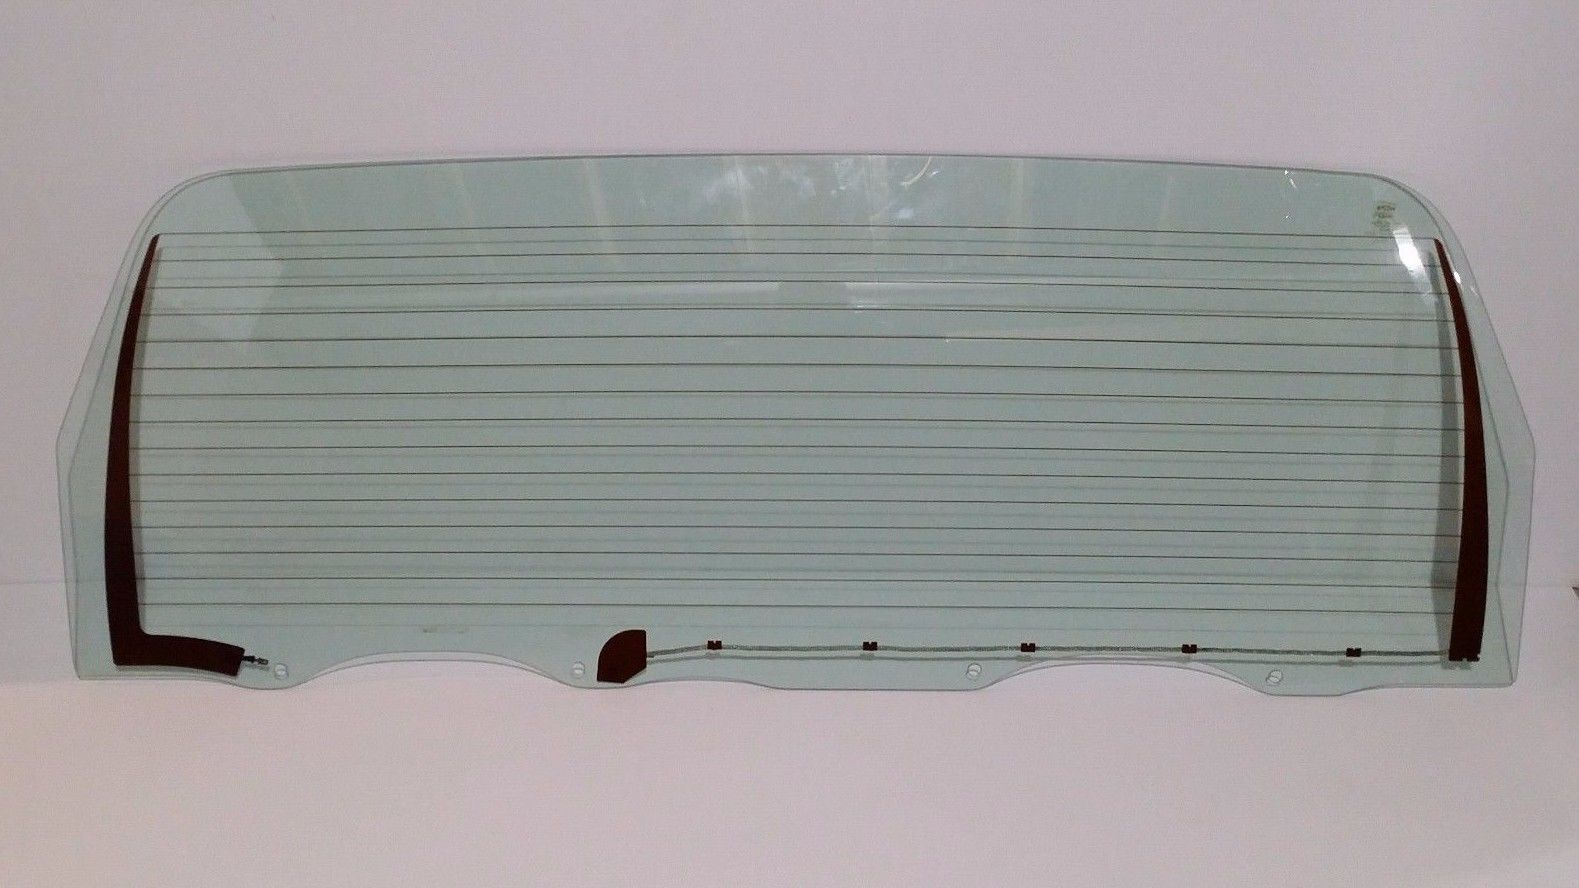 1992-1996 Ford Bronco Rear Back Glass / Tailgate Window, Heated